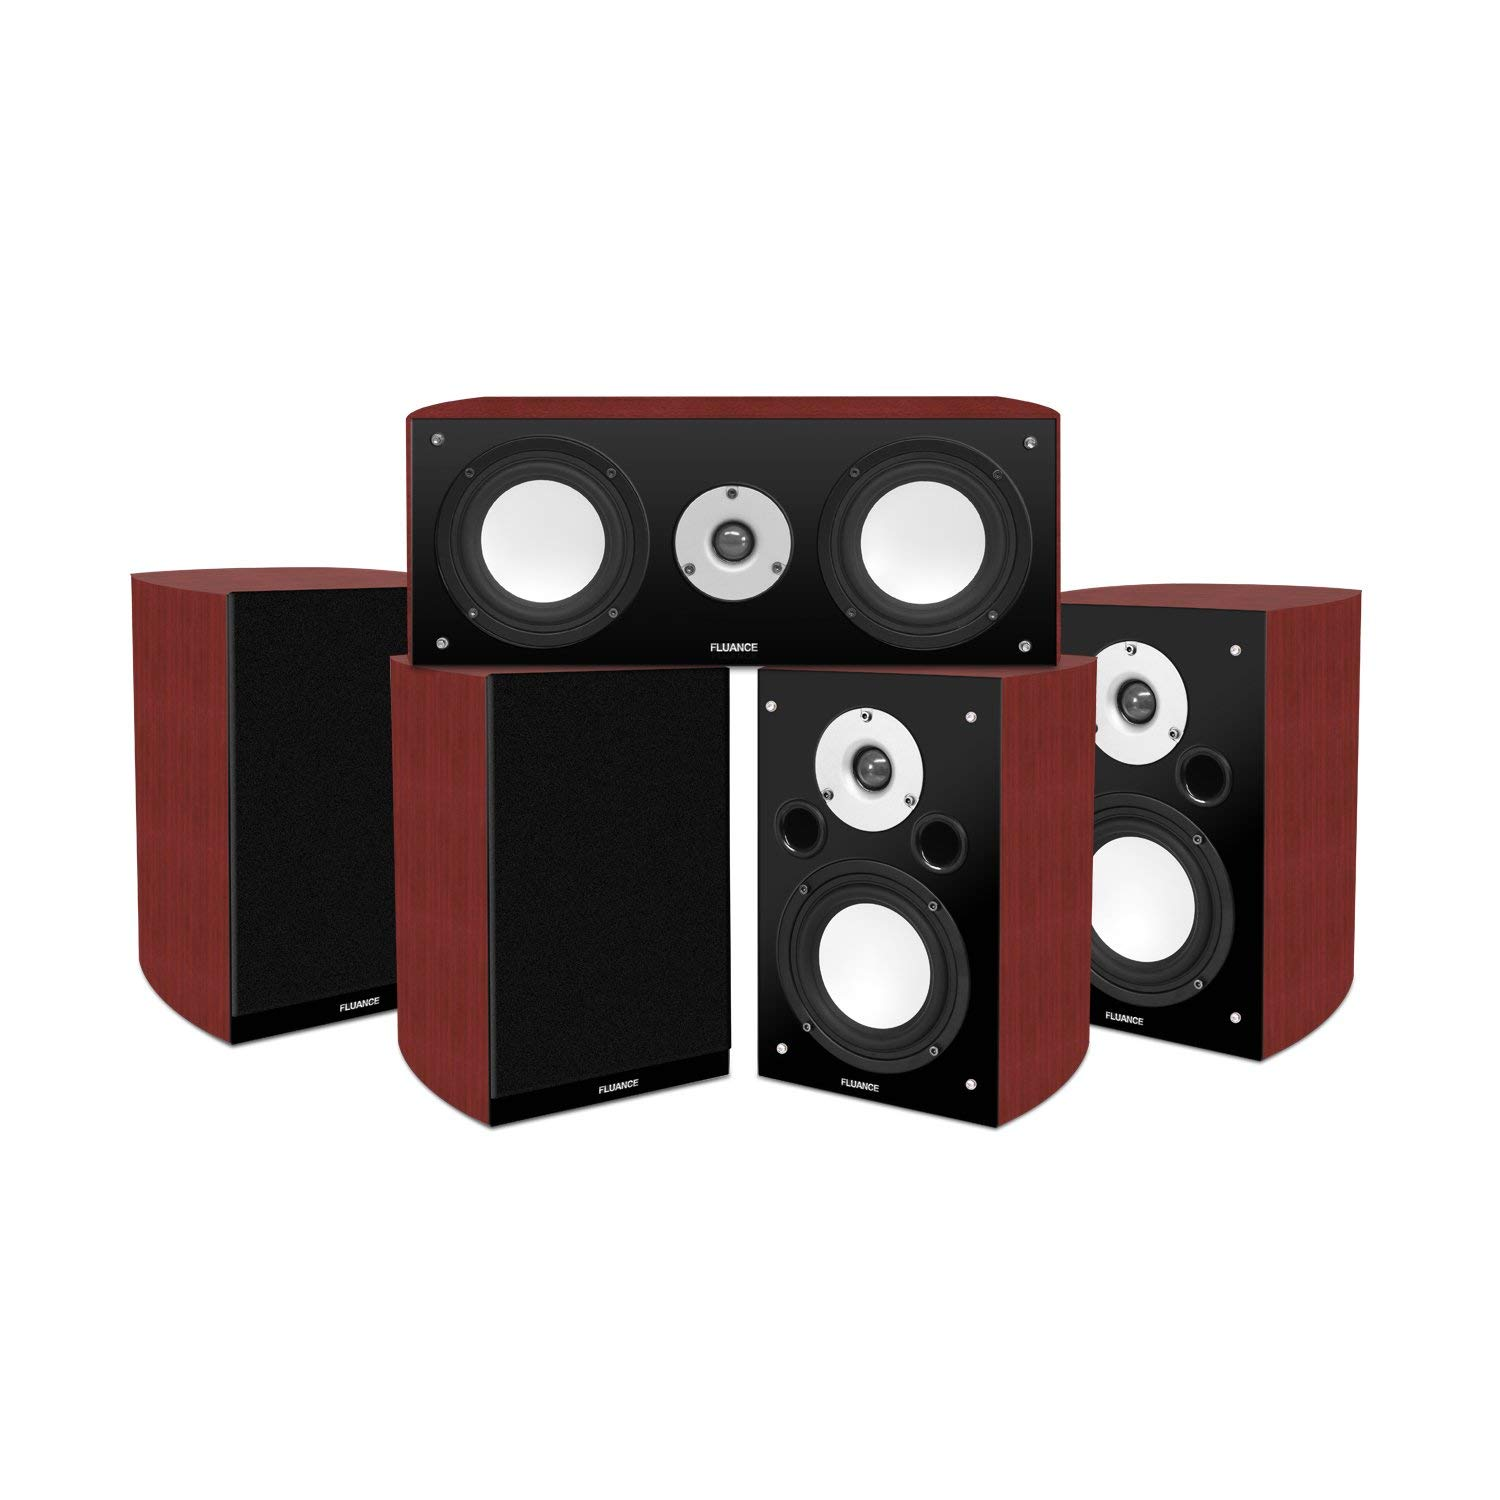 Fluance Reference Series High Performance 5.0 Surround Sound Home Theater Speaker System